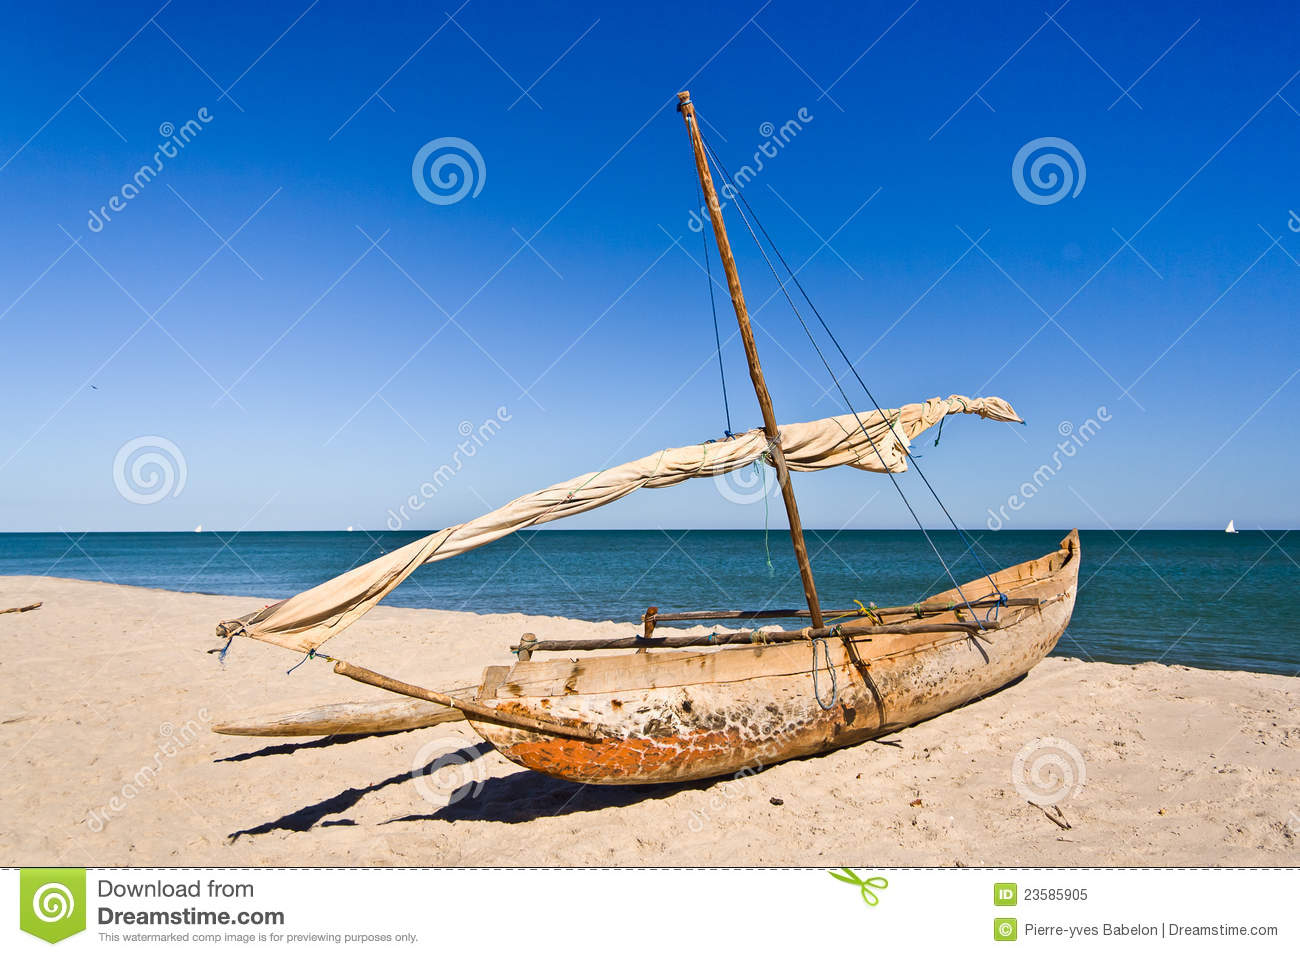 Outrigger Canoe Royalty Free Stock Photo   Image  23585905